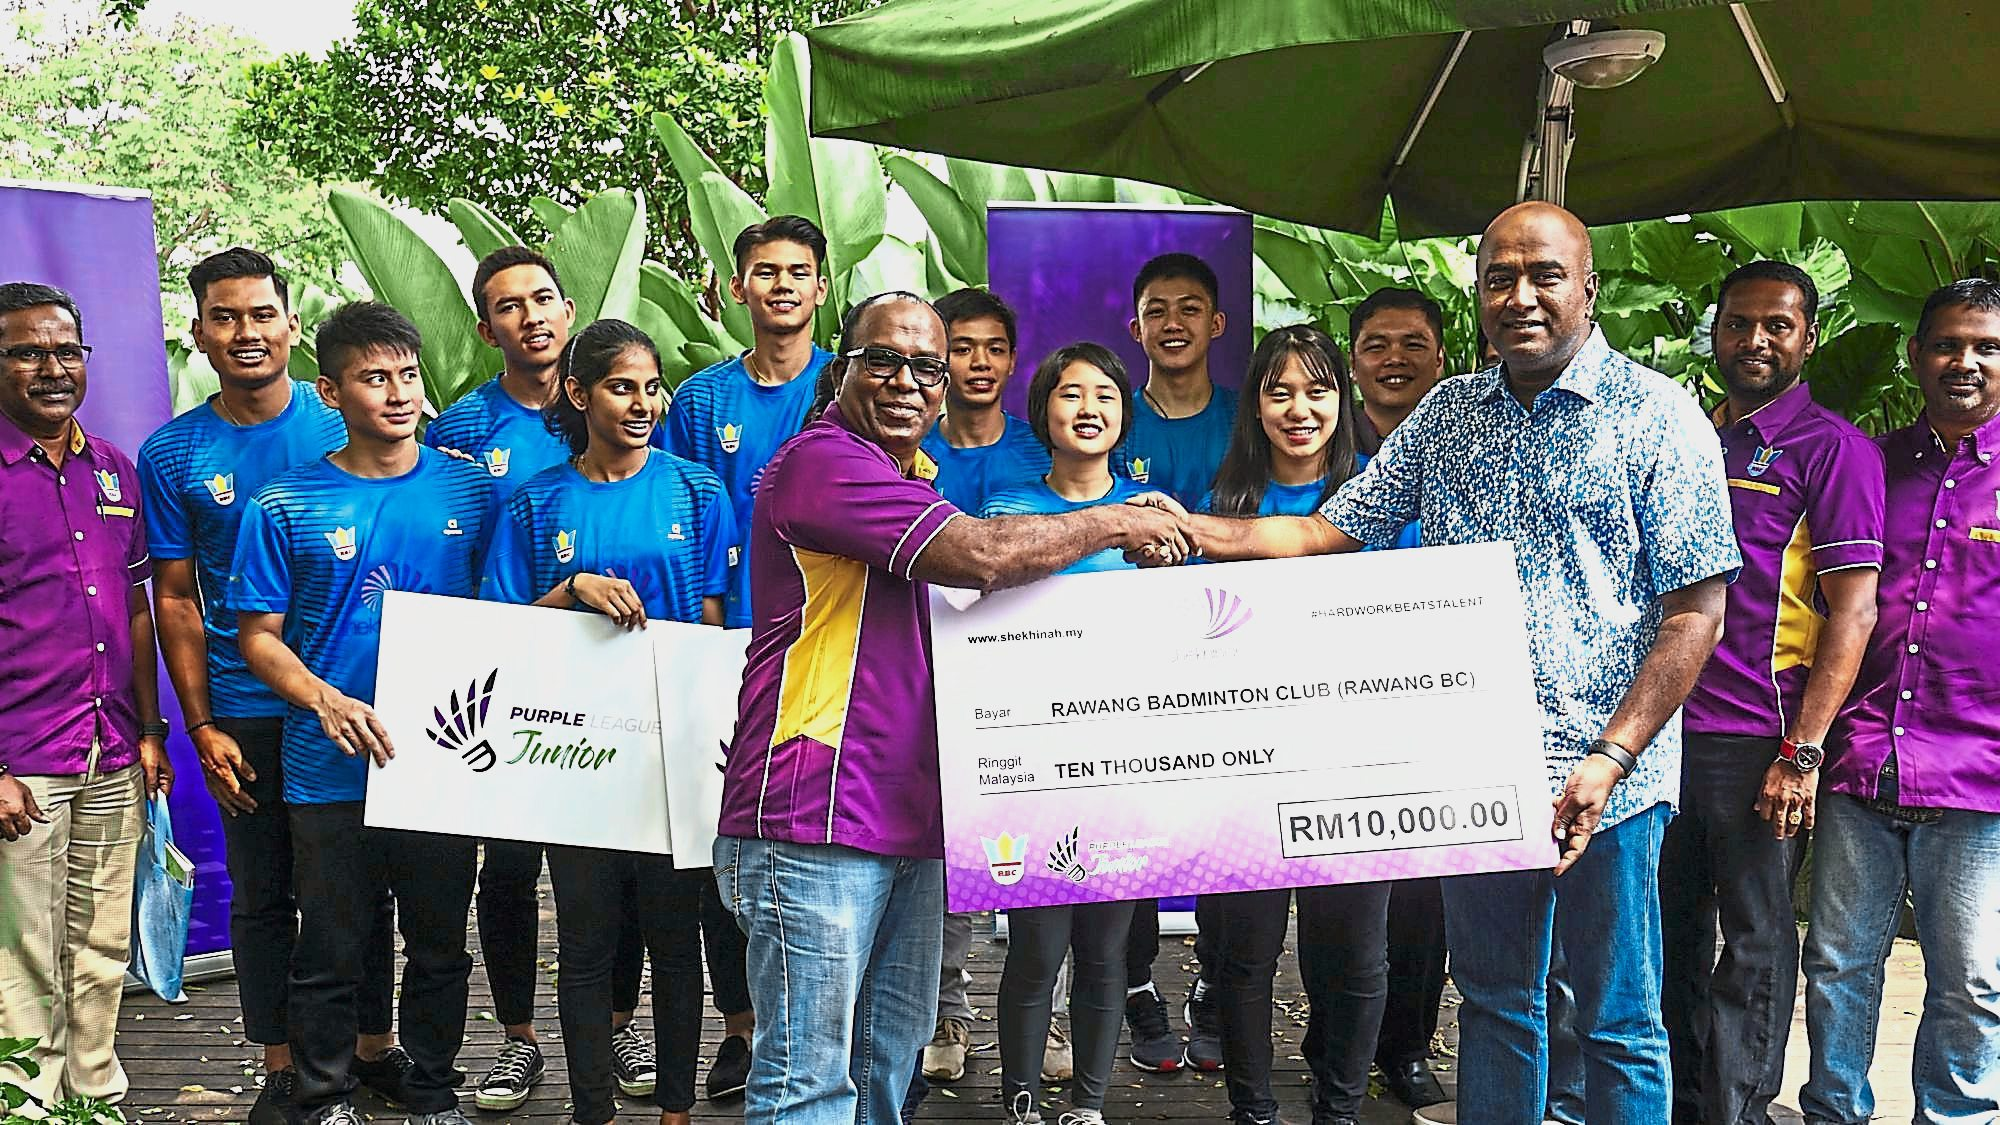 Christopher (front row, right) presenting a mock cheque to Jayaseelan in a sponsorship event in Bangsar last week.